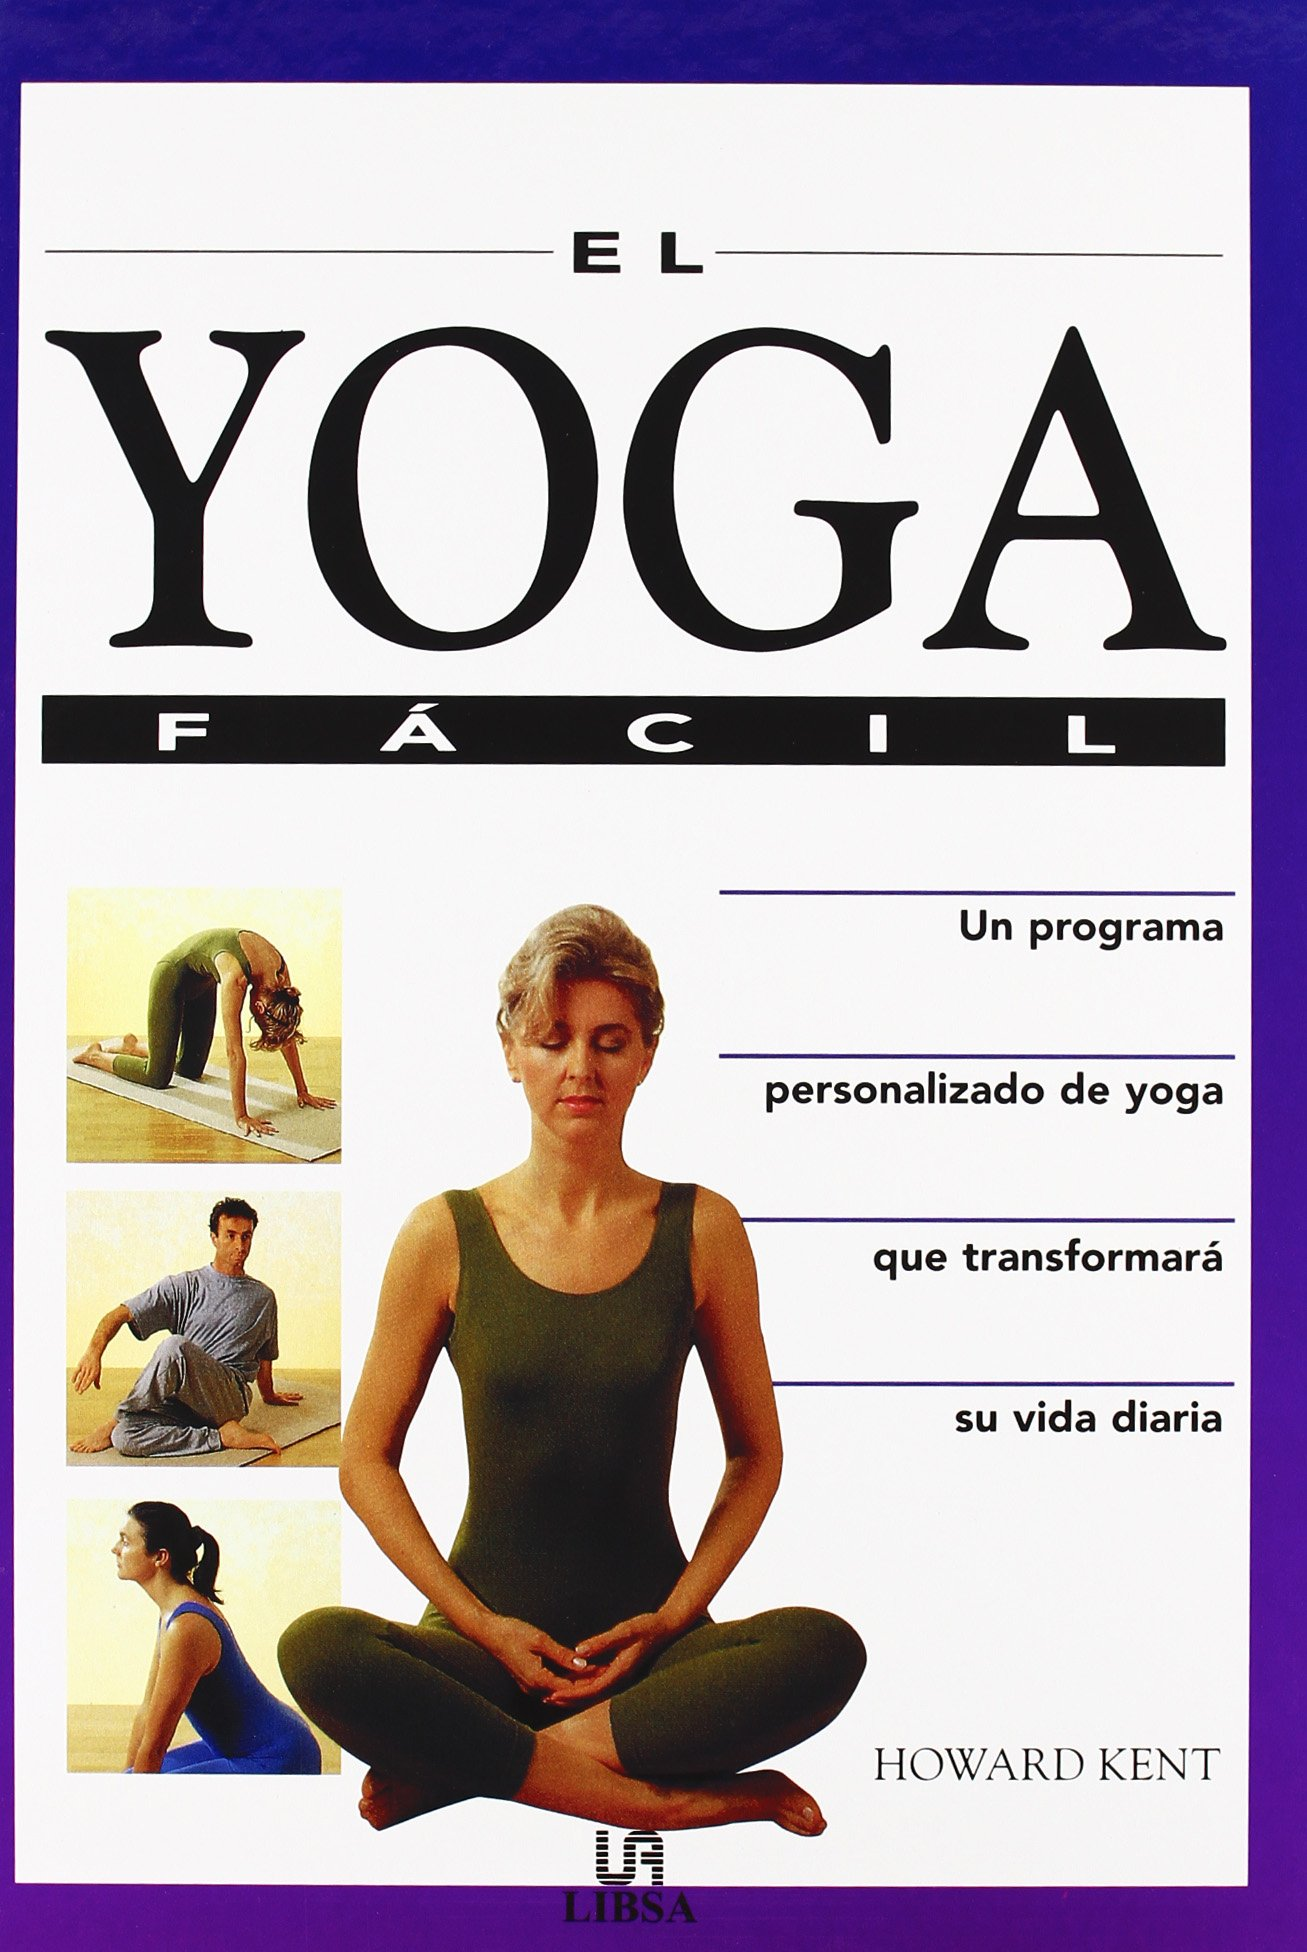 El Yoga Facil: Howard Kent: 9788476307304: Amazon.com: Books